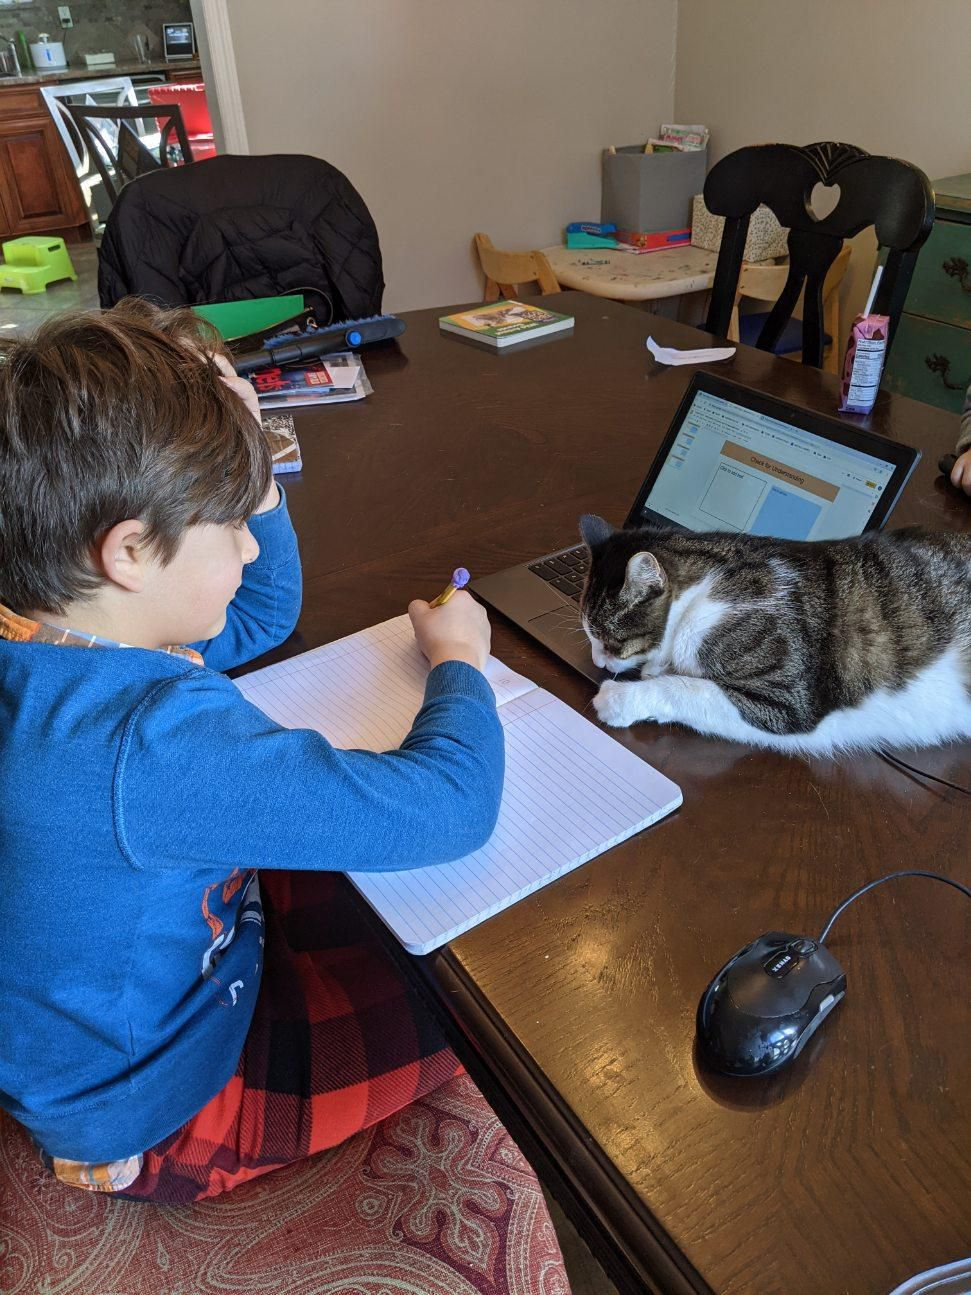 Tristan writing in a notebook working on class work while the family cat lays on his laptop.